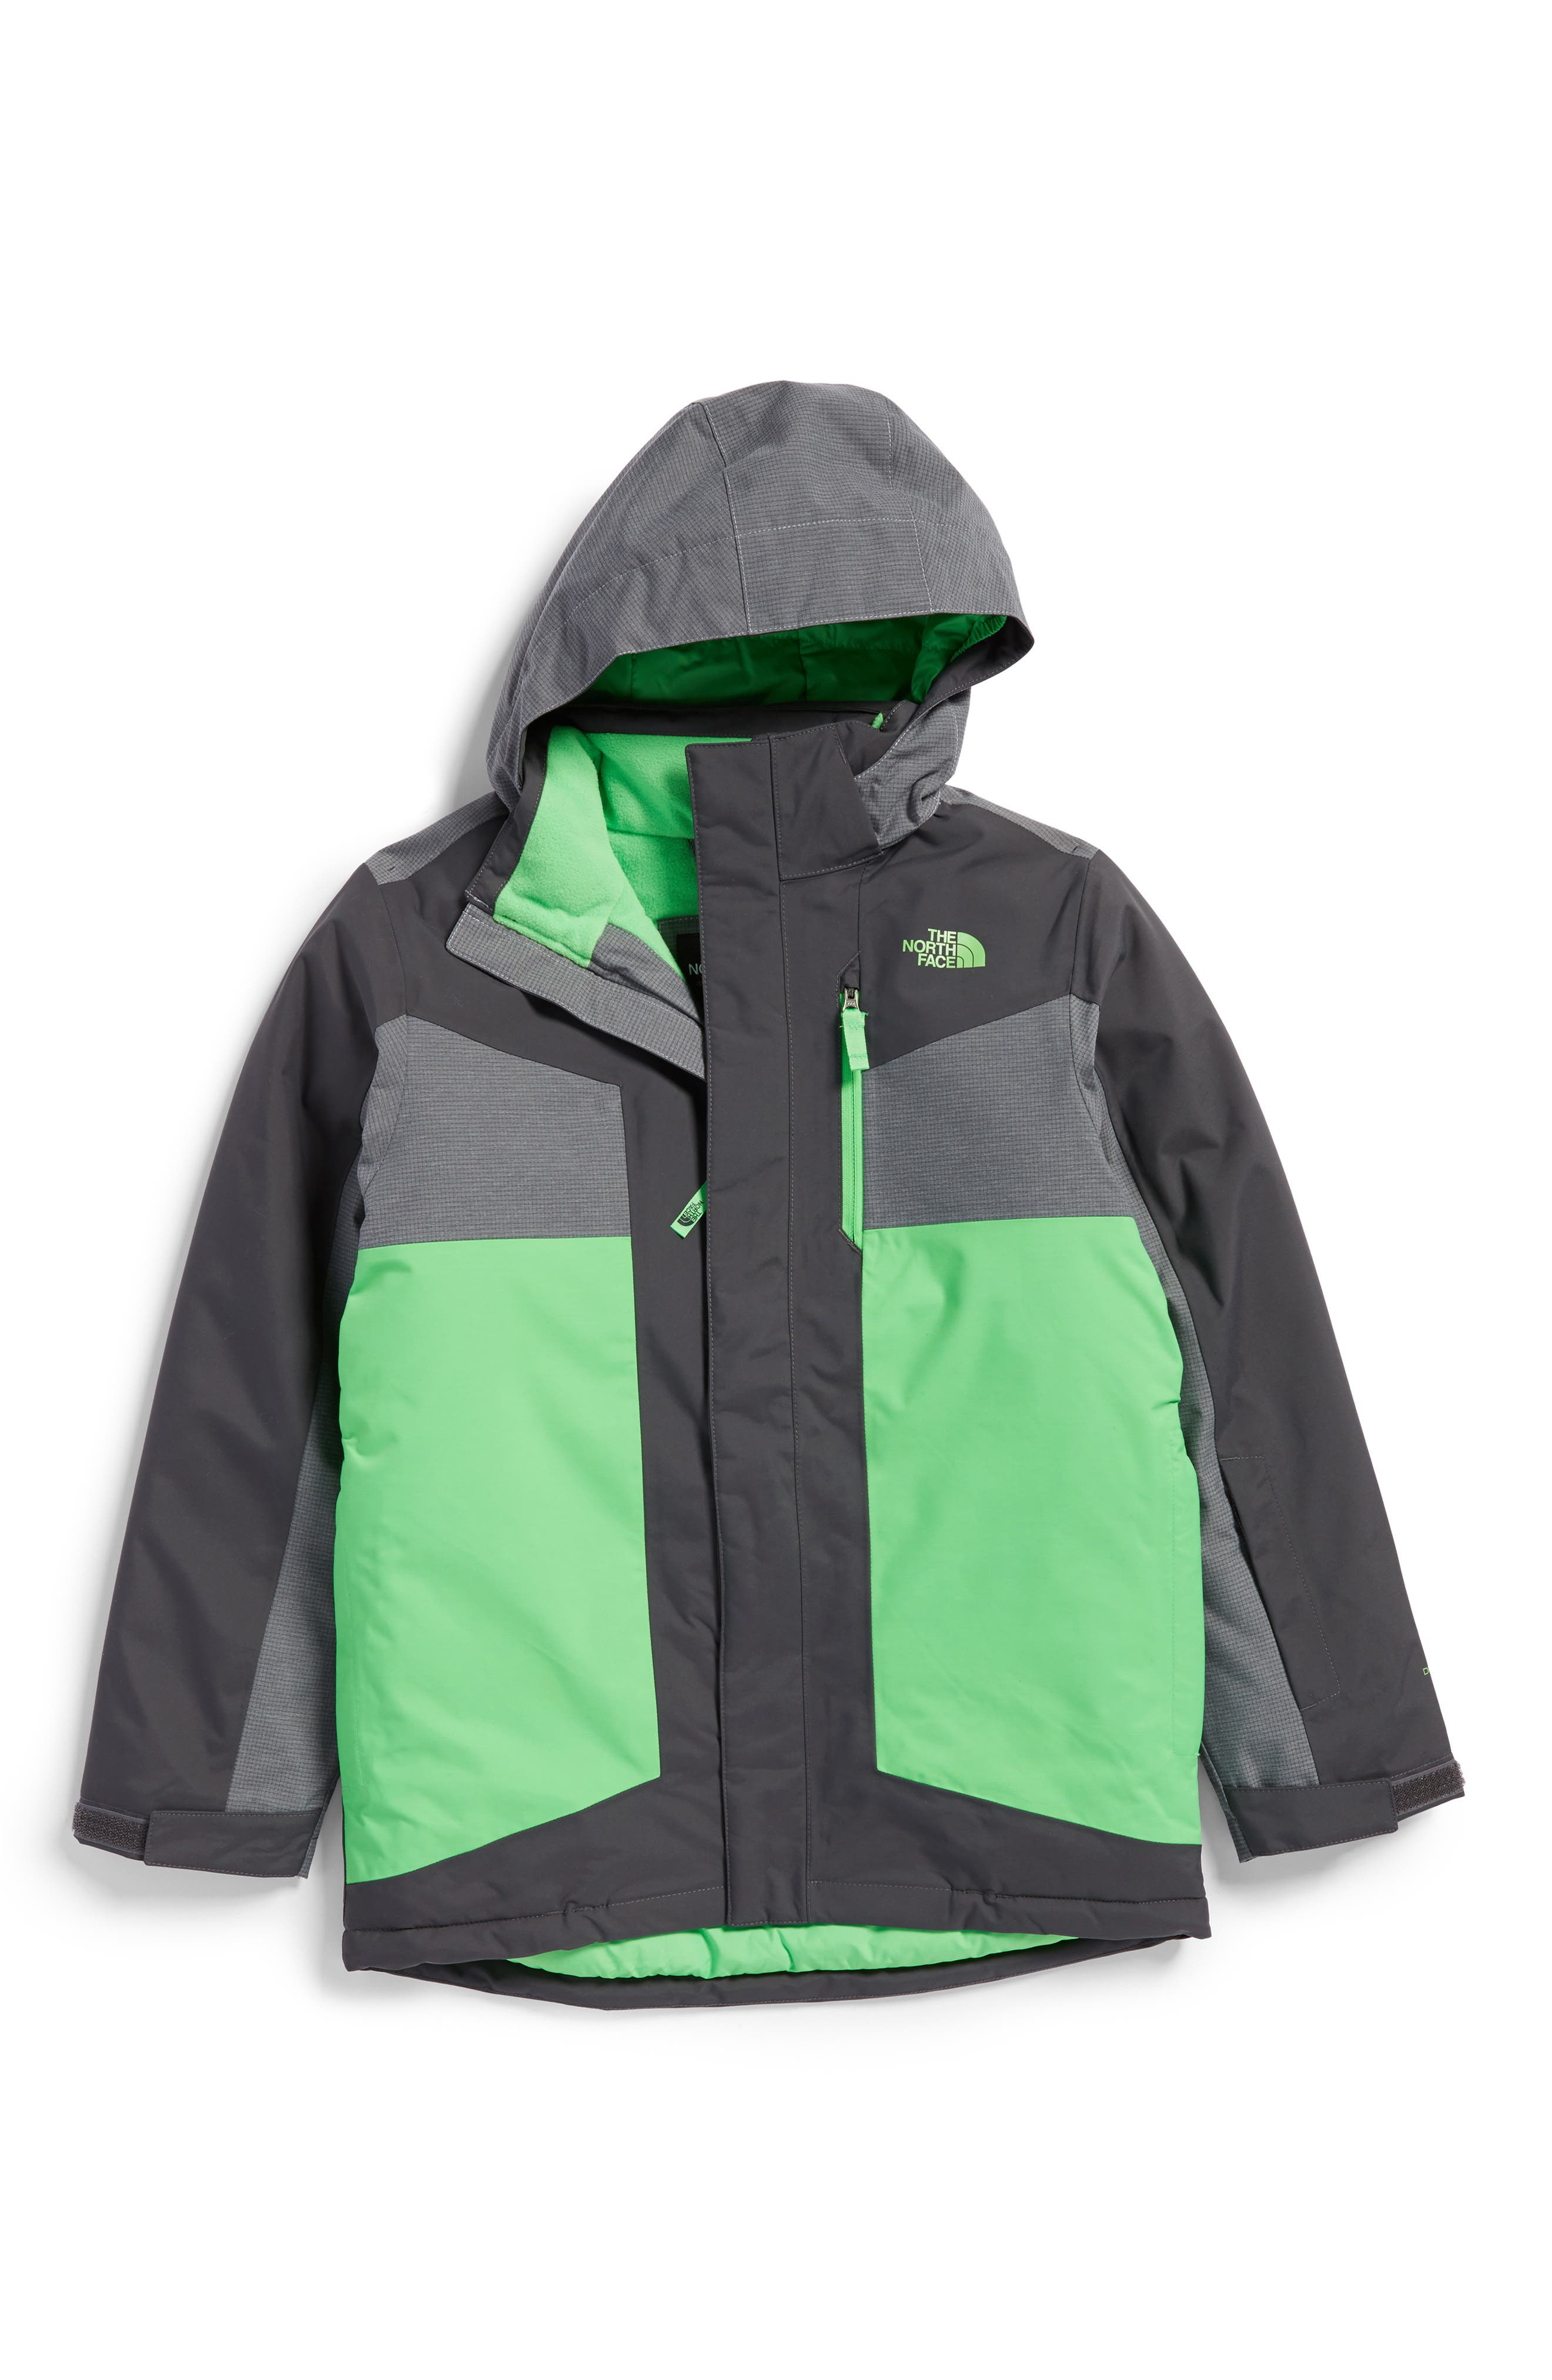 Alternate Image 1 Selected - The North Face Axel Heatseeker™ Insulated Jacket (Big Boys)